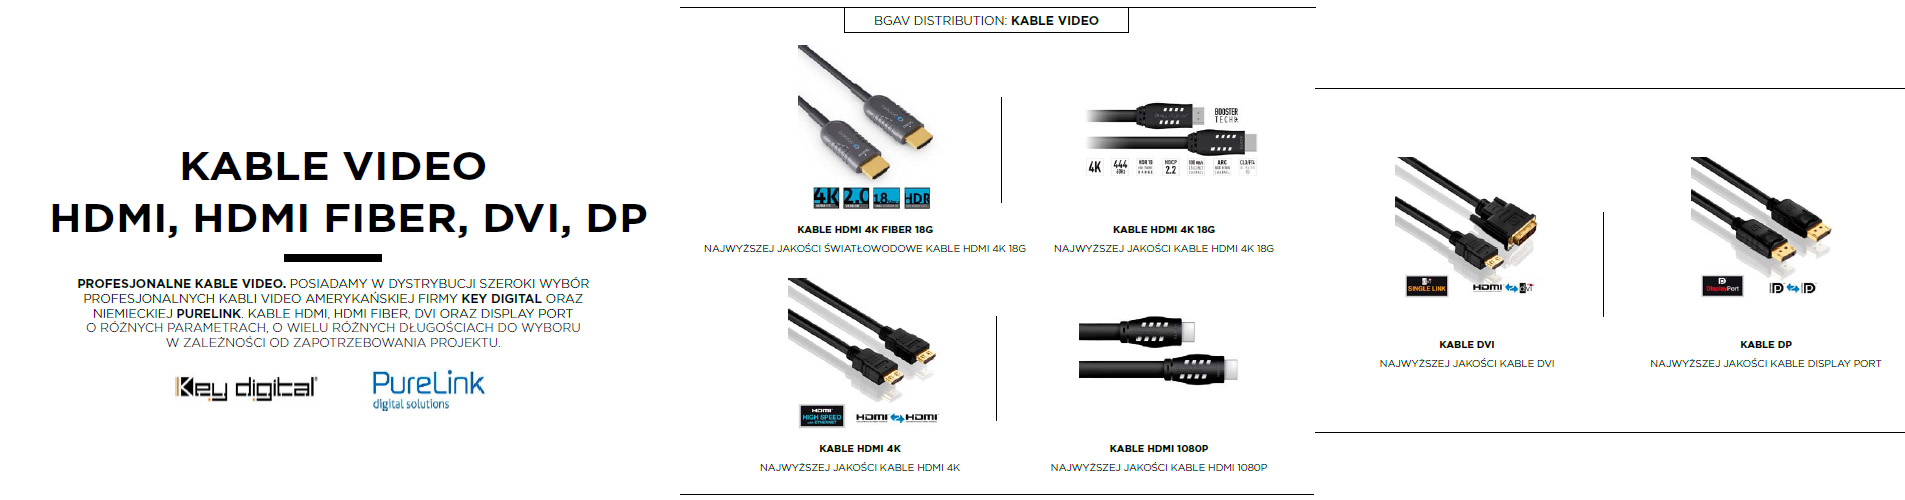 kable video hdmi dvi display port